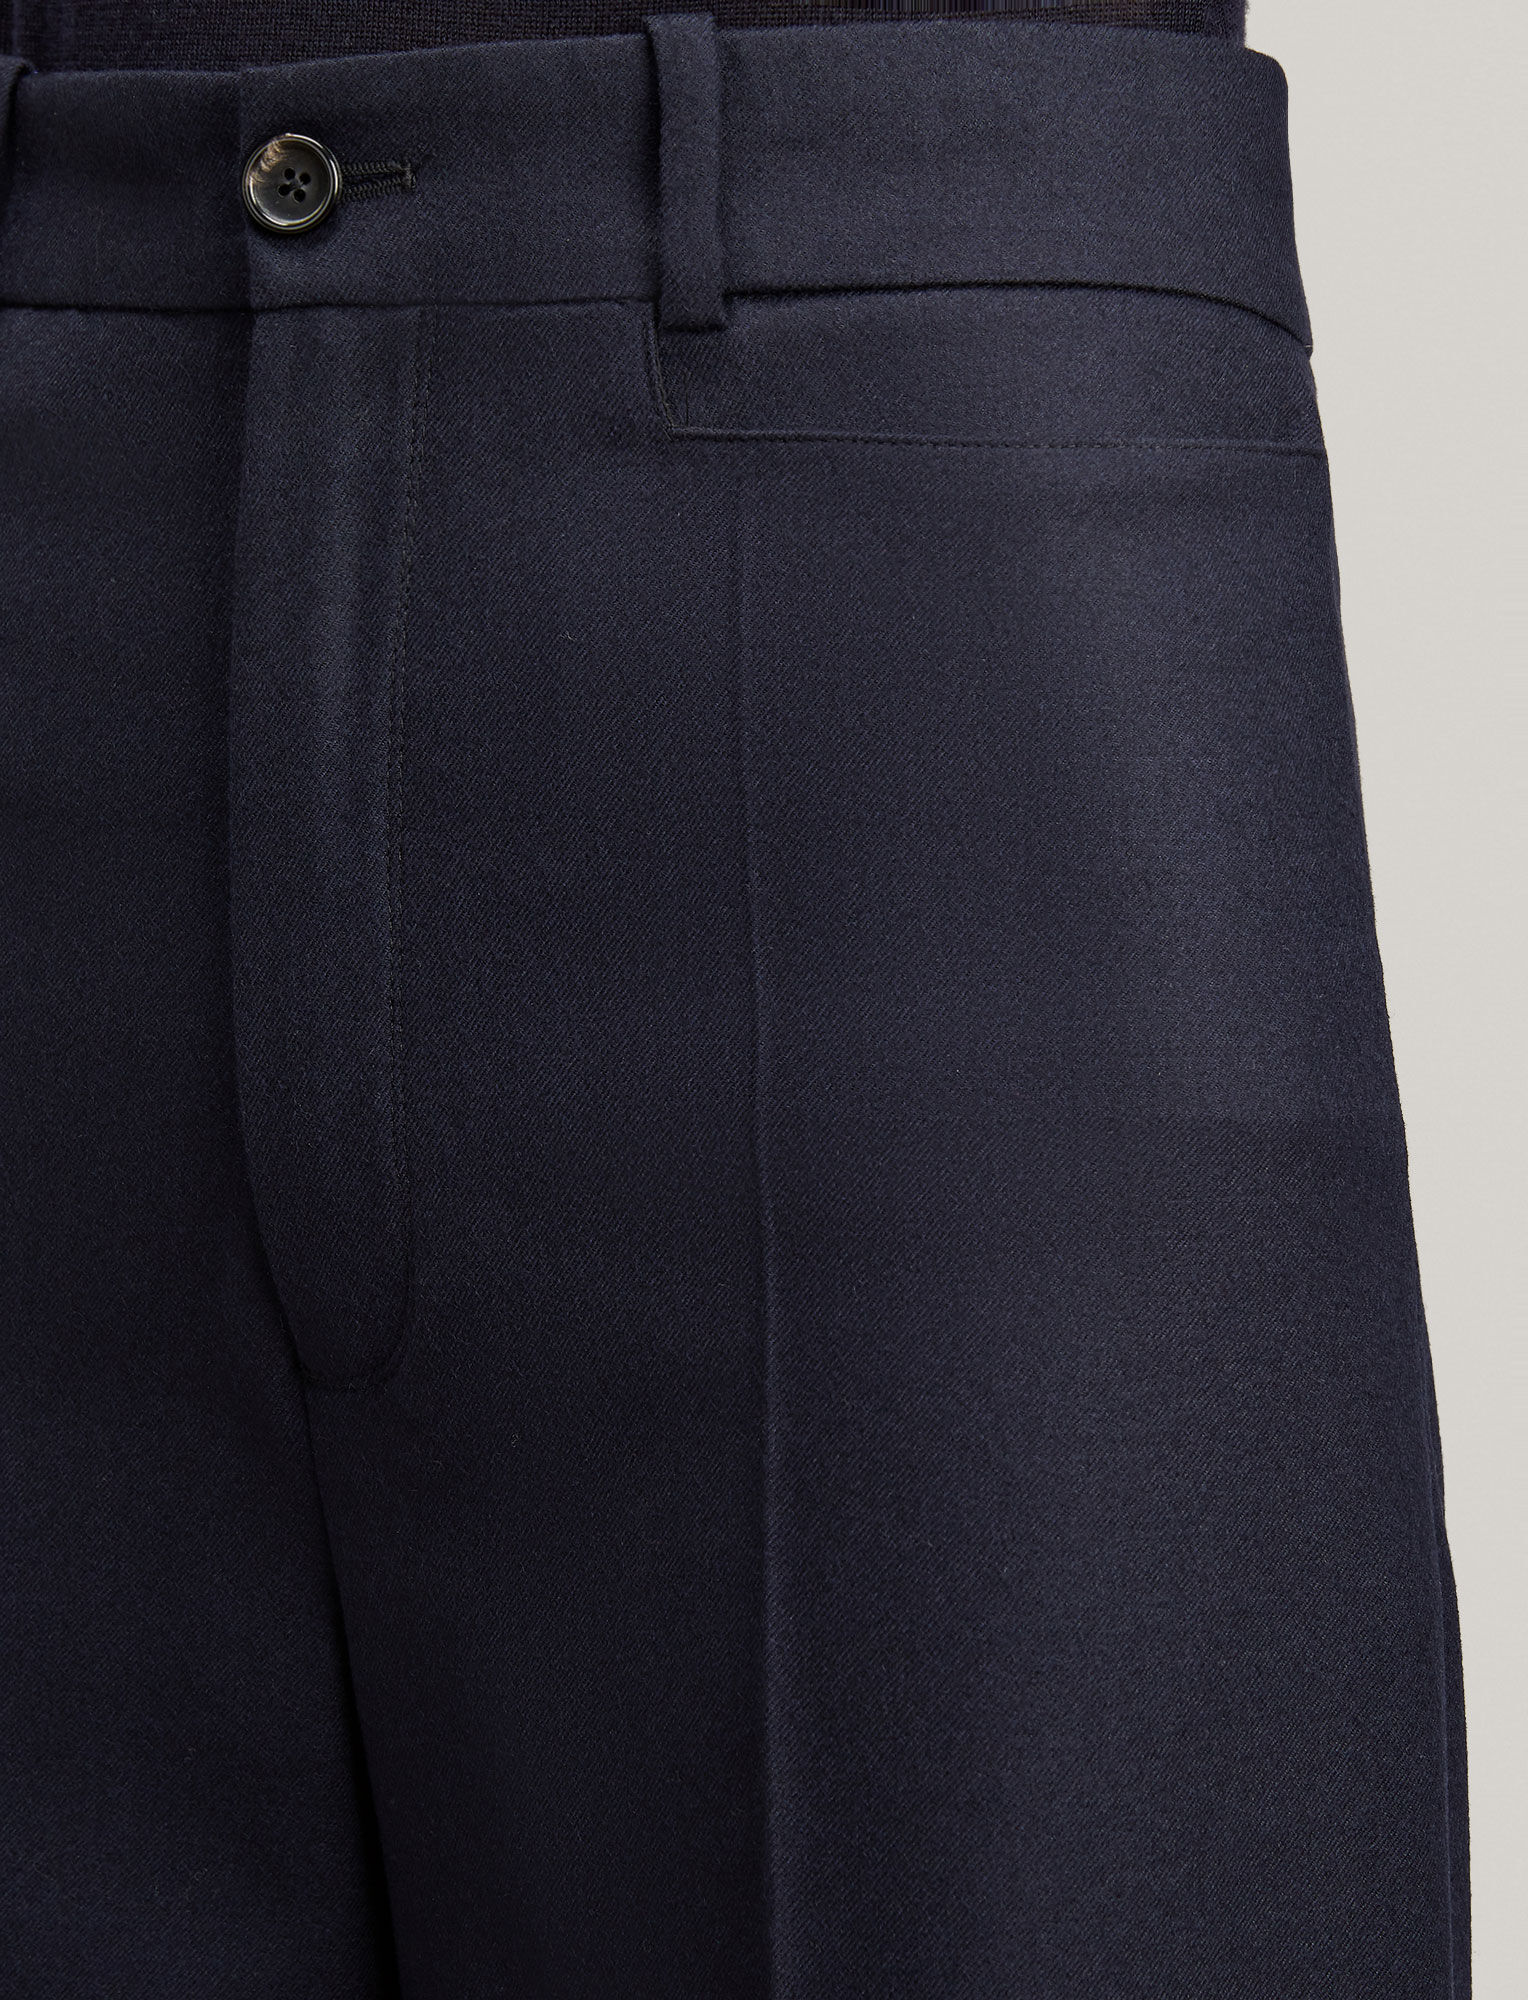 Joseph, Dana Flannel Stretch Trousers, in NAVY